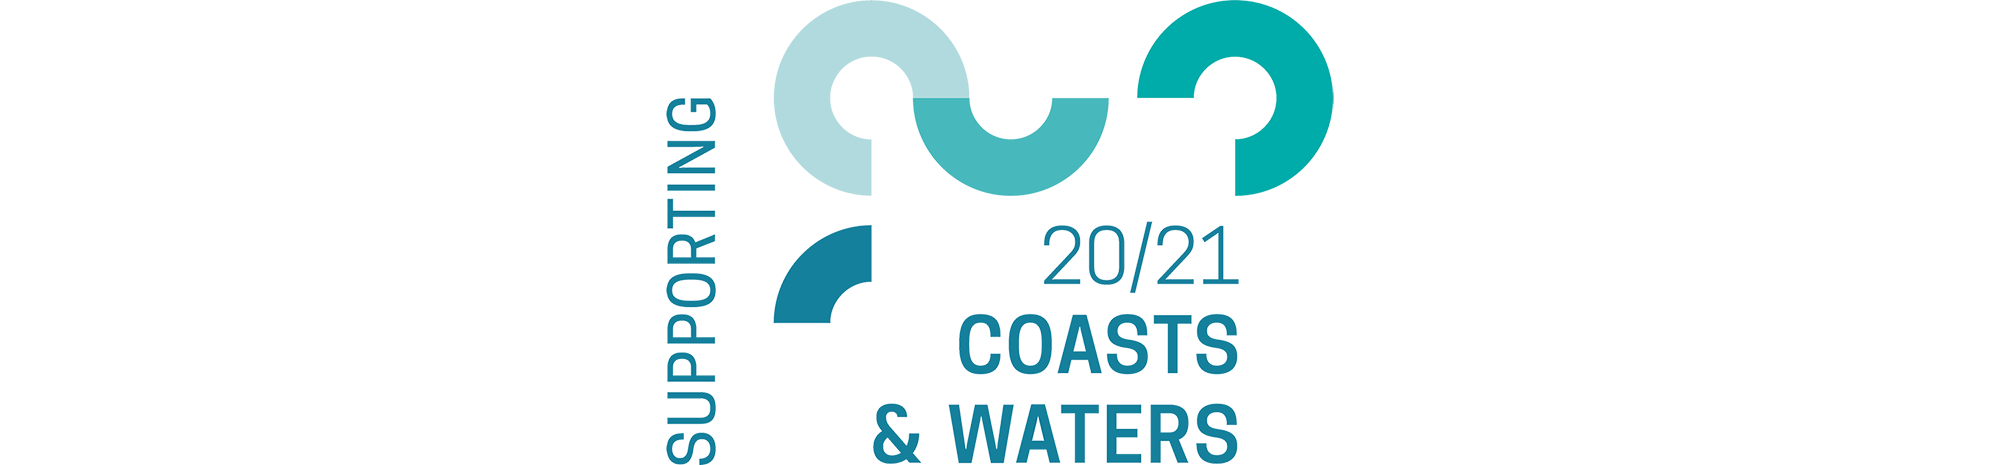 2021_Coasts_and_waters_logo.png?mtime=20210427143458#asset:485856